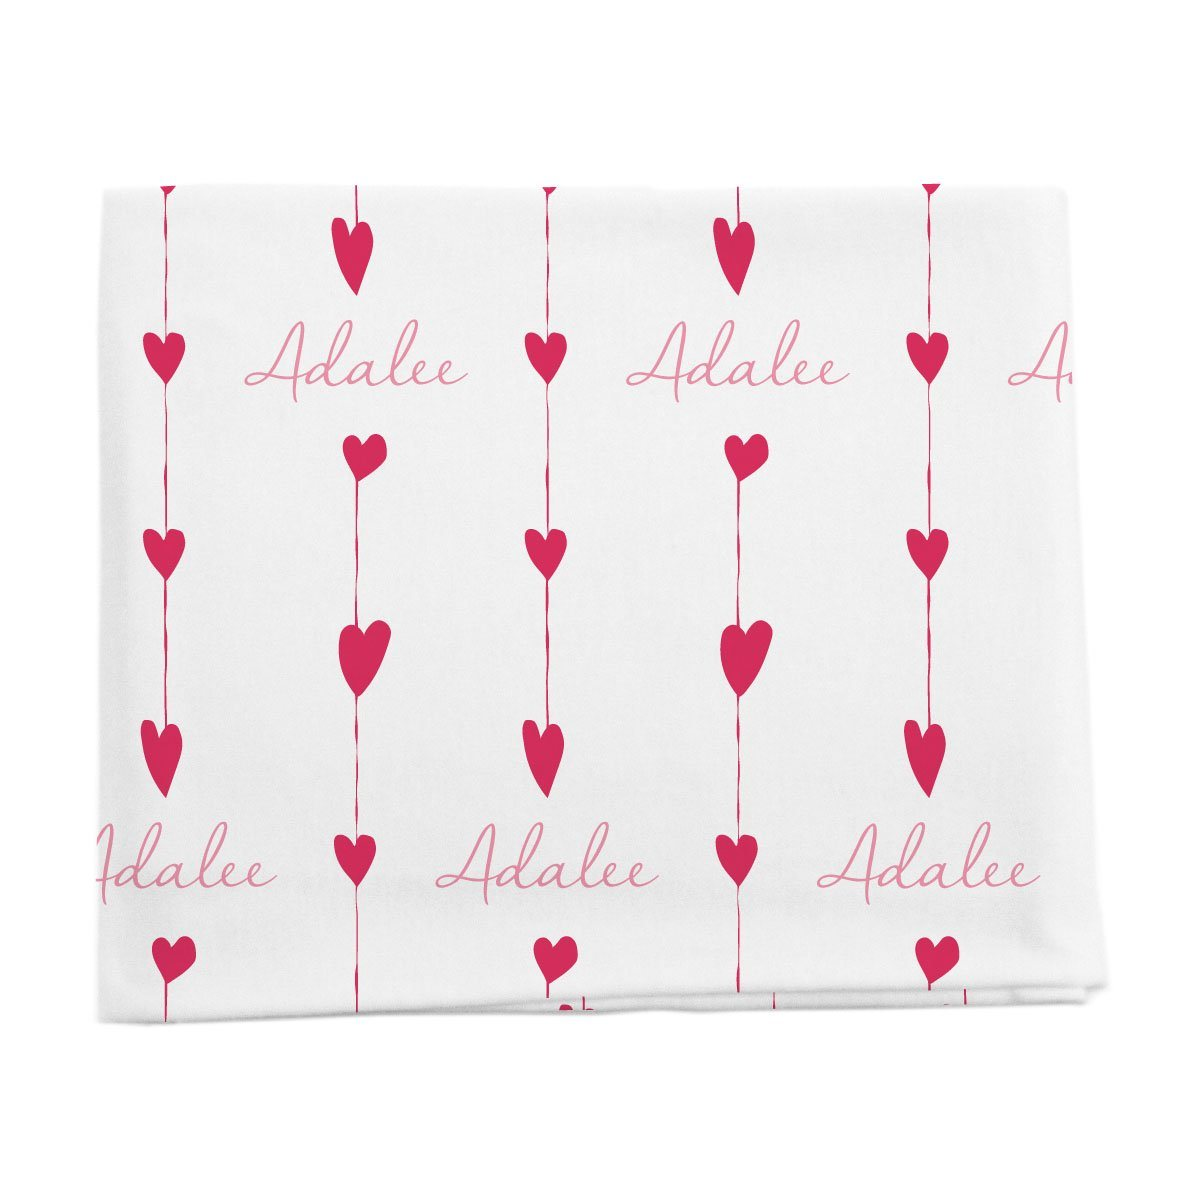 Adalee's Valentine Hearts | Swaddle